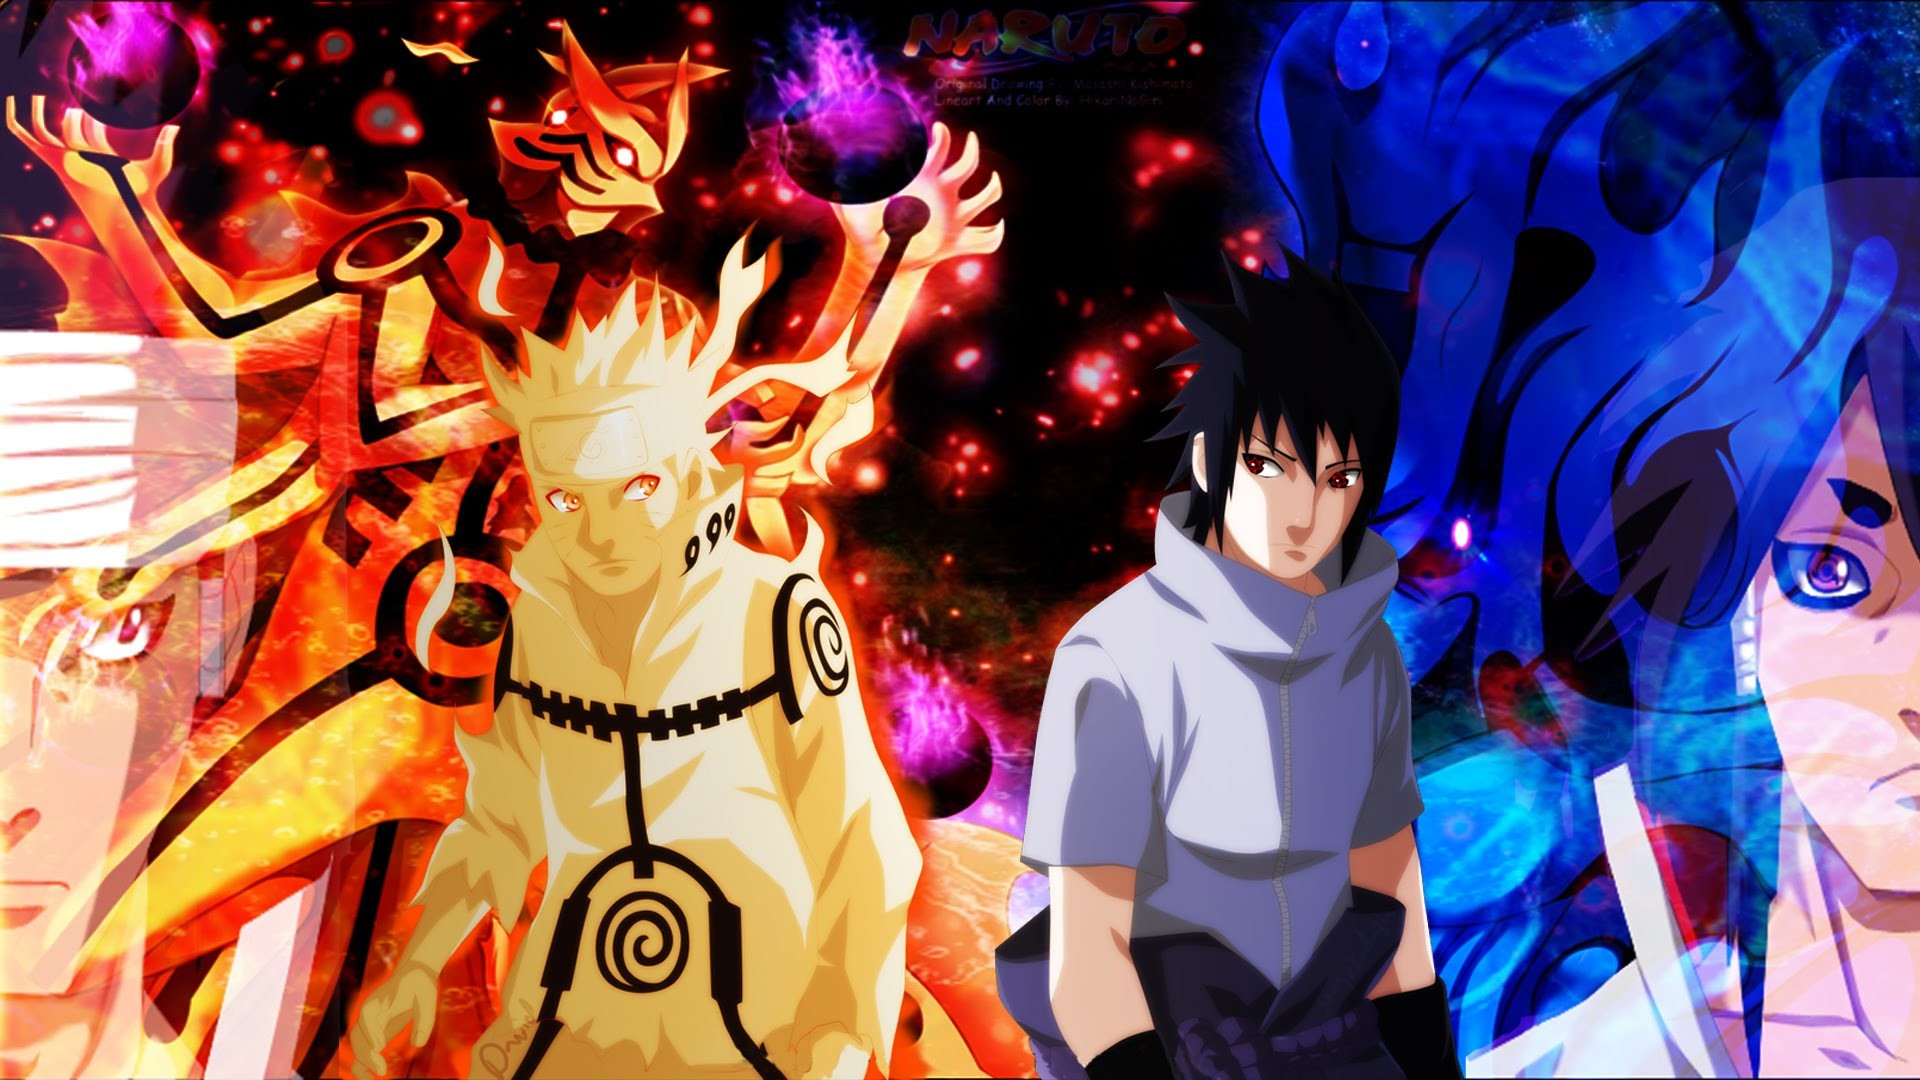 Madara Sage Of Six Paths Wallpaper Posted By Michelle Tremblay